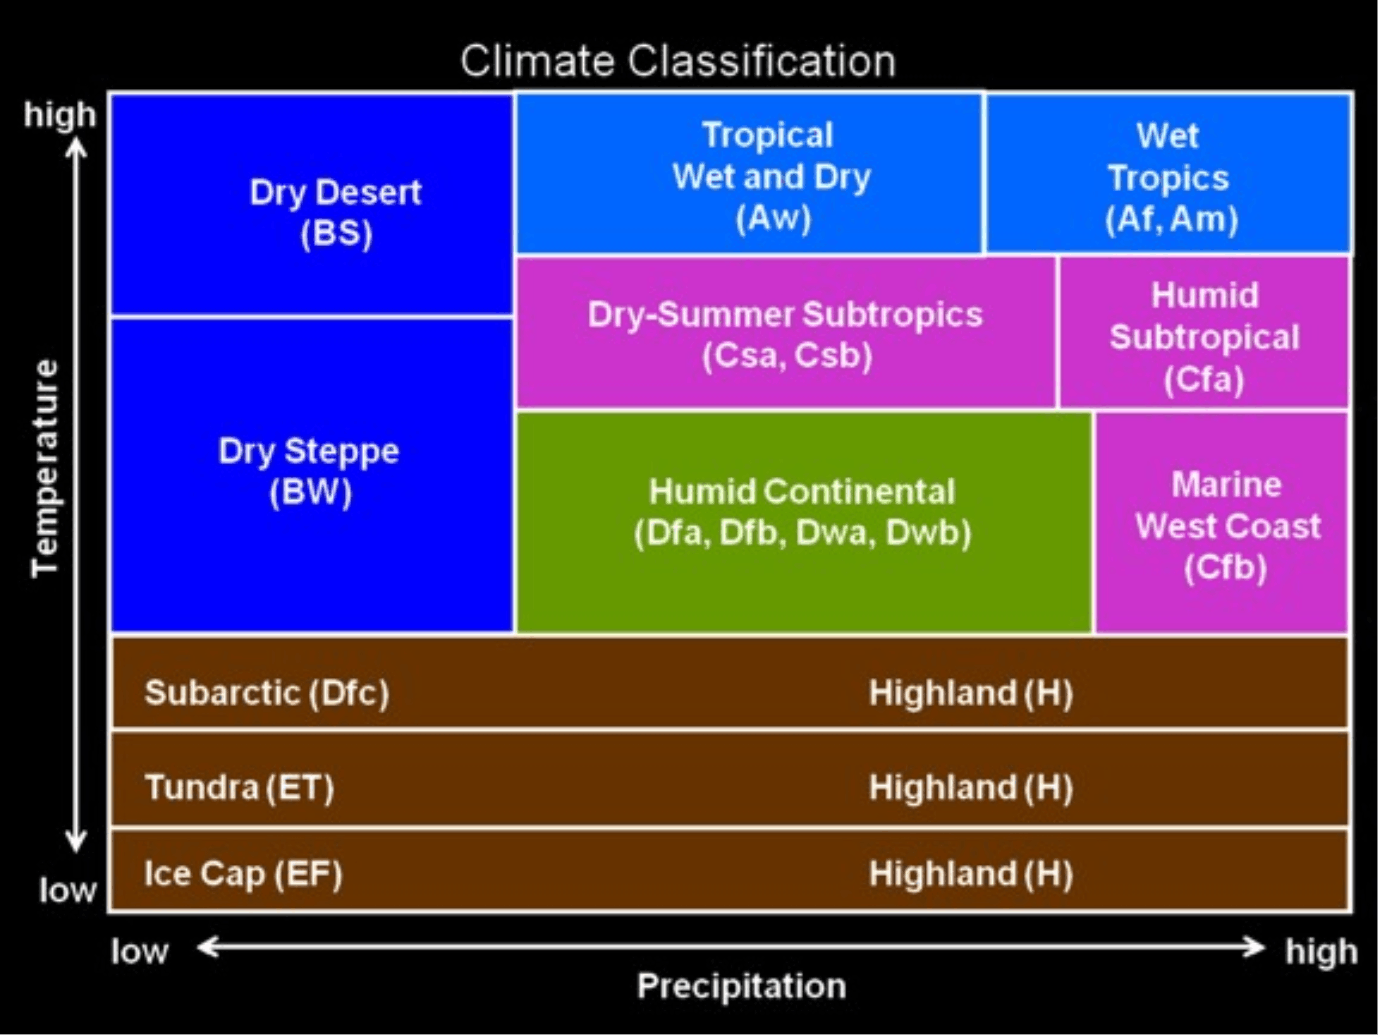 Climate Classification Image